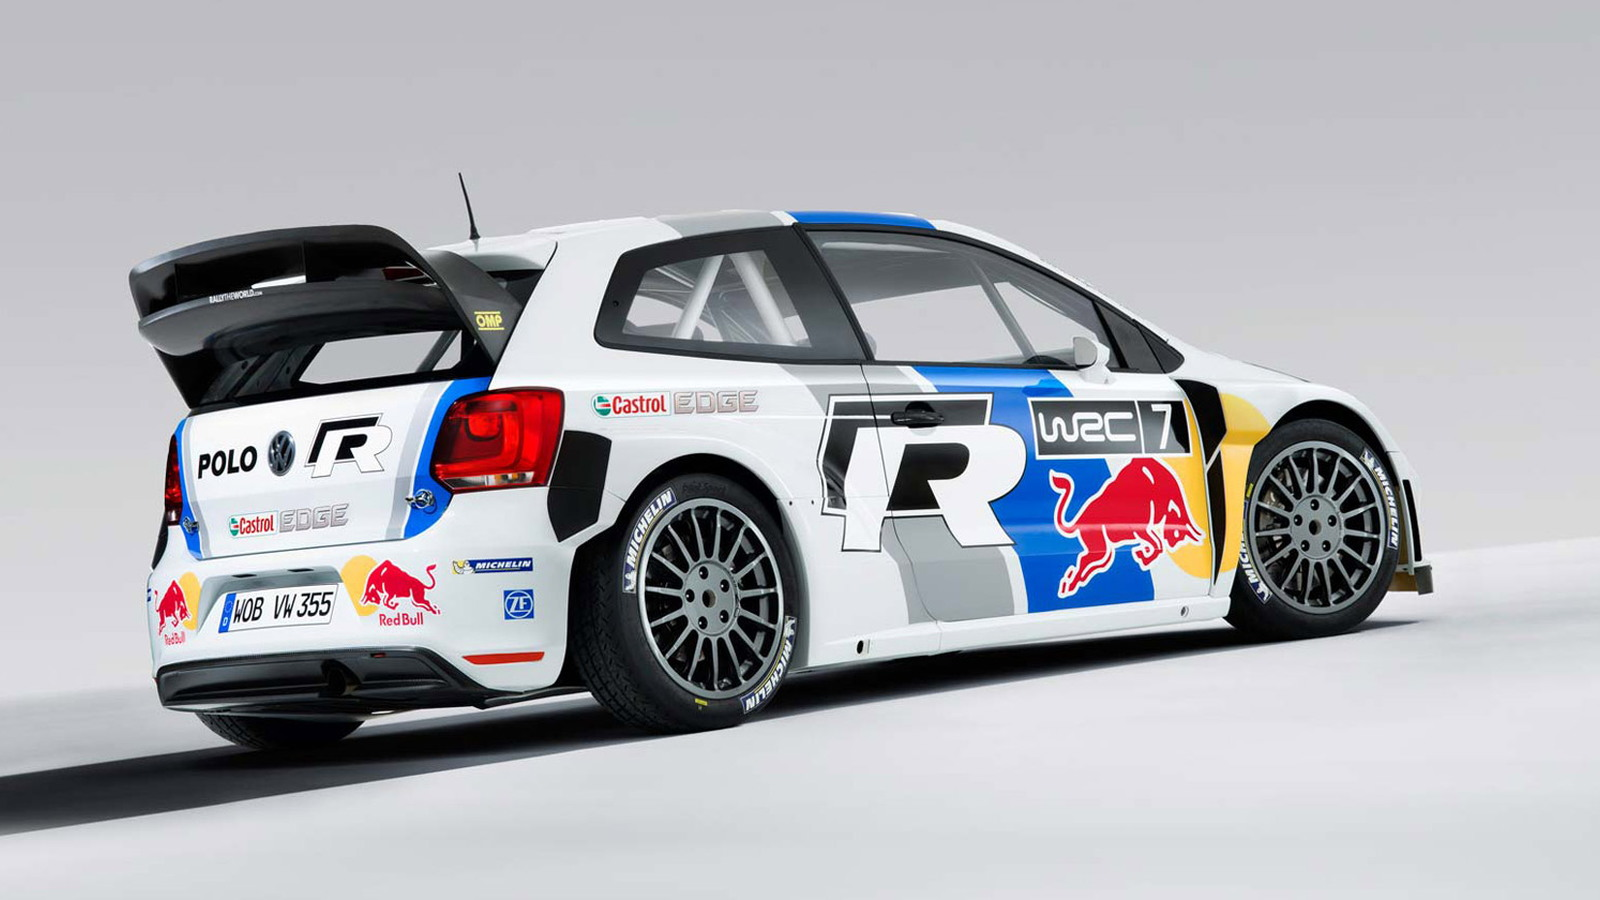 2013 大众汽车 Polo R WRC race car